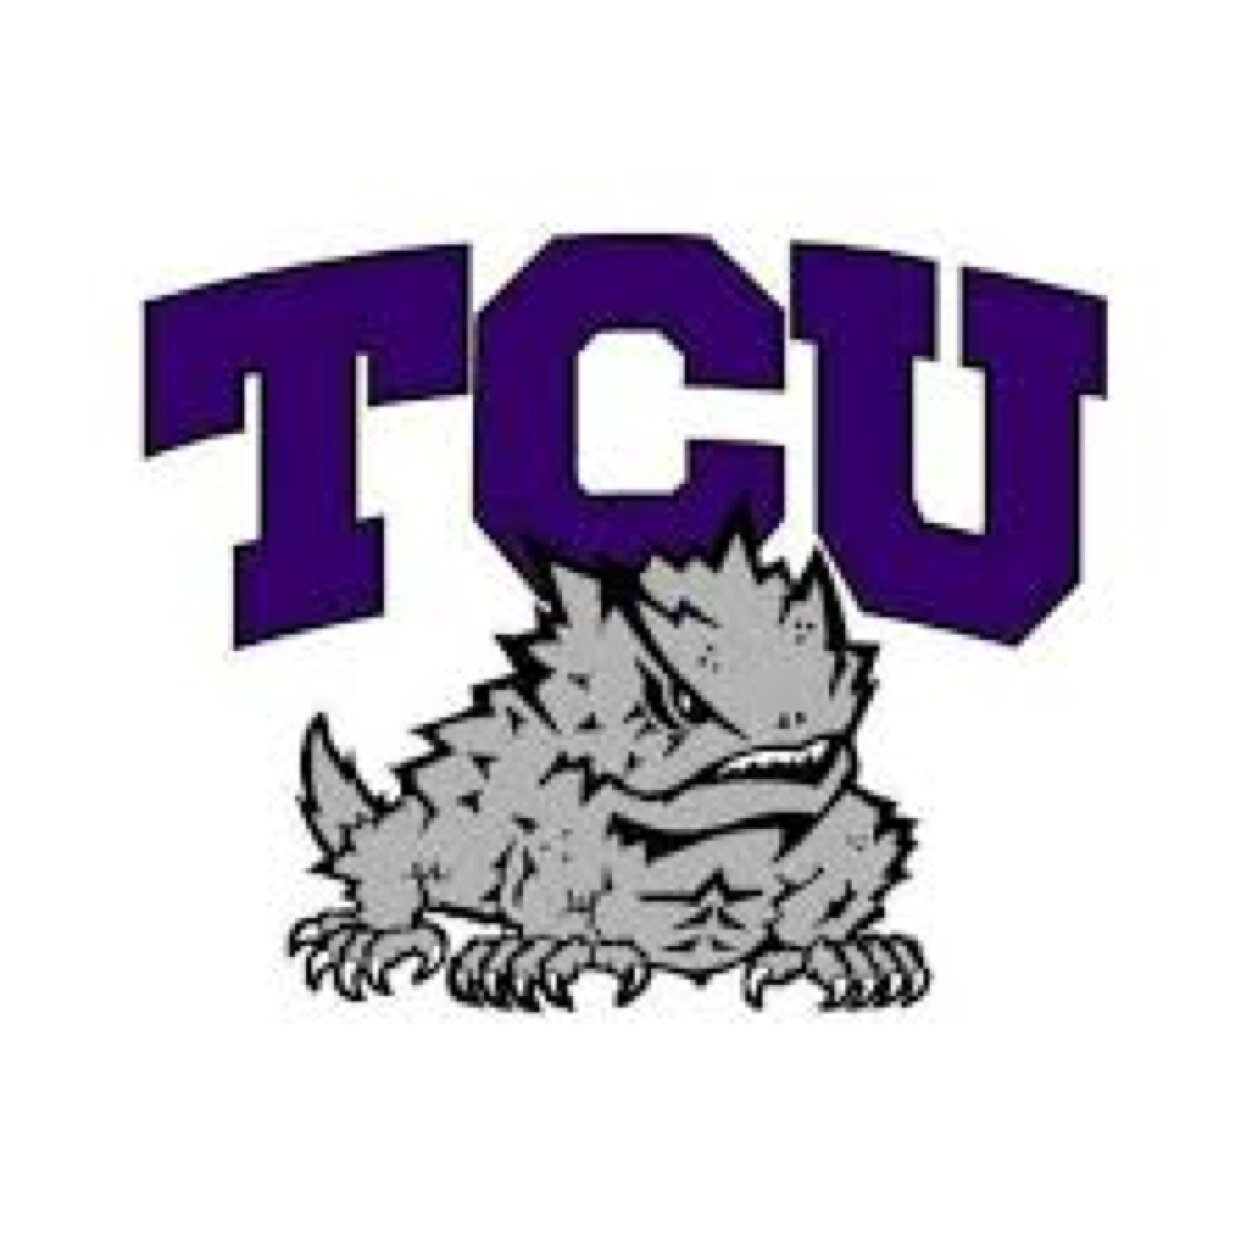 University Of Tcu Wallpaper Collection 12 Wallpapers